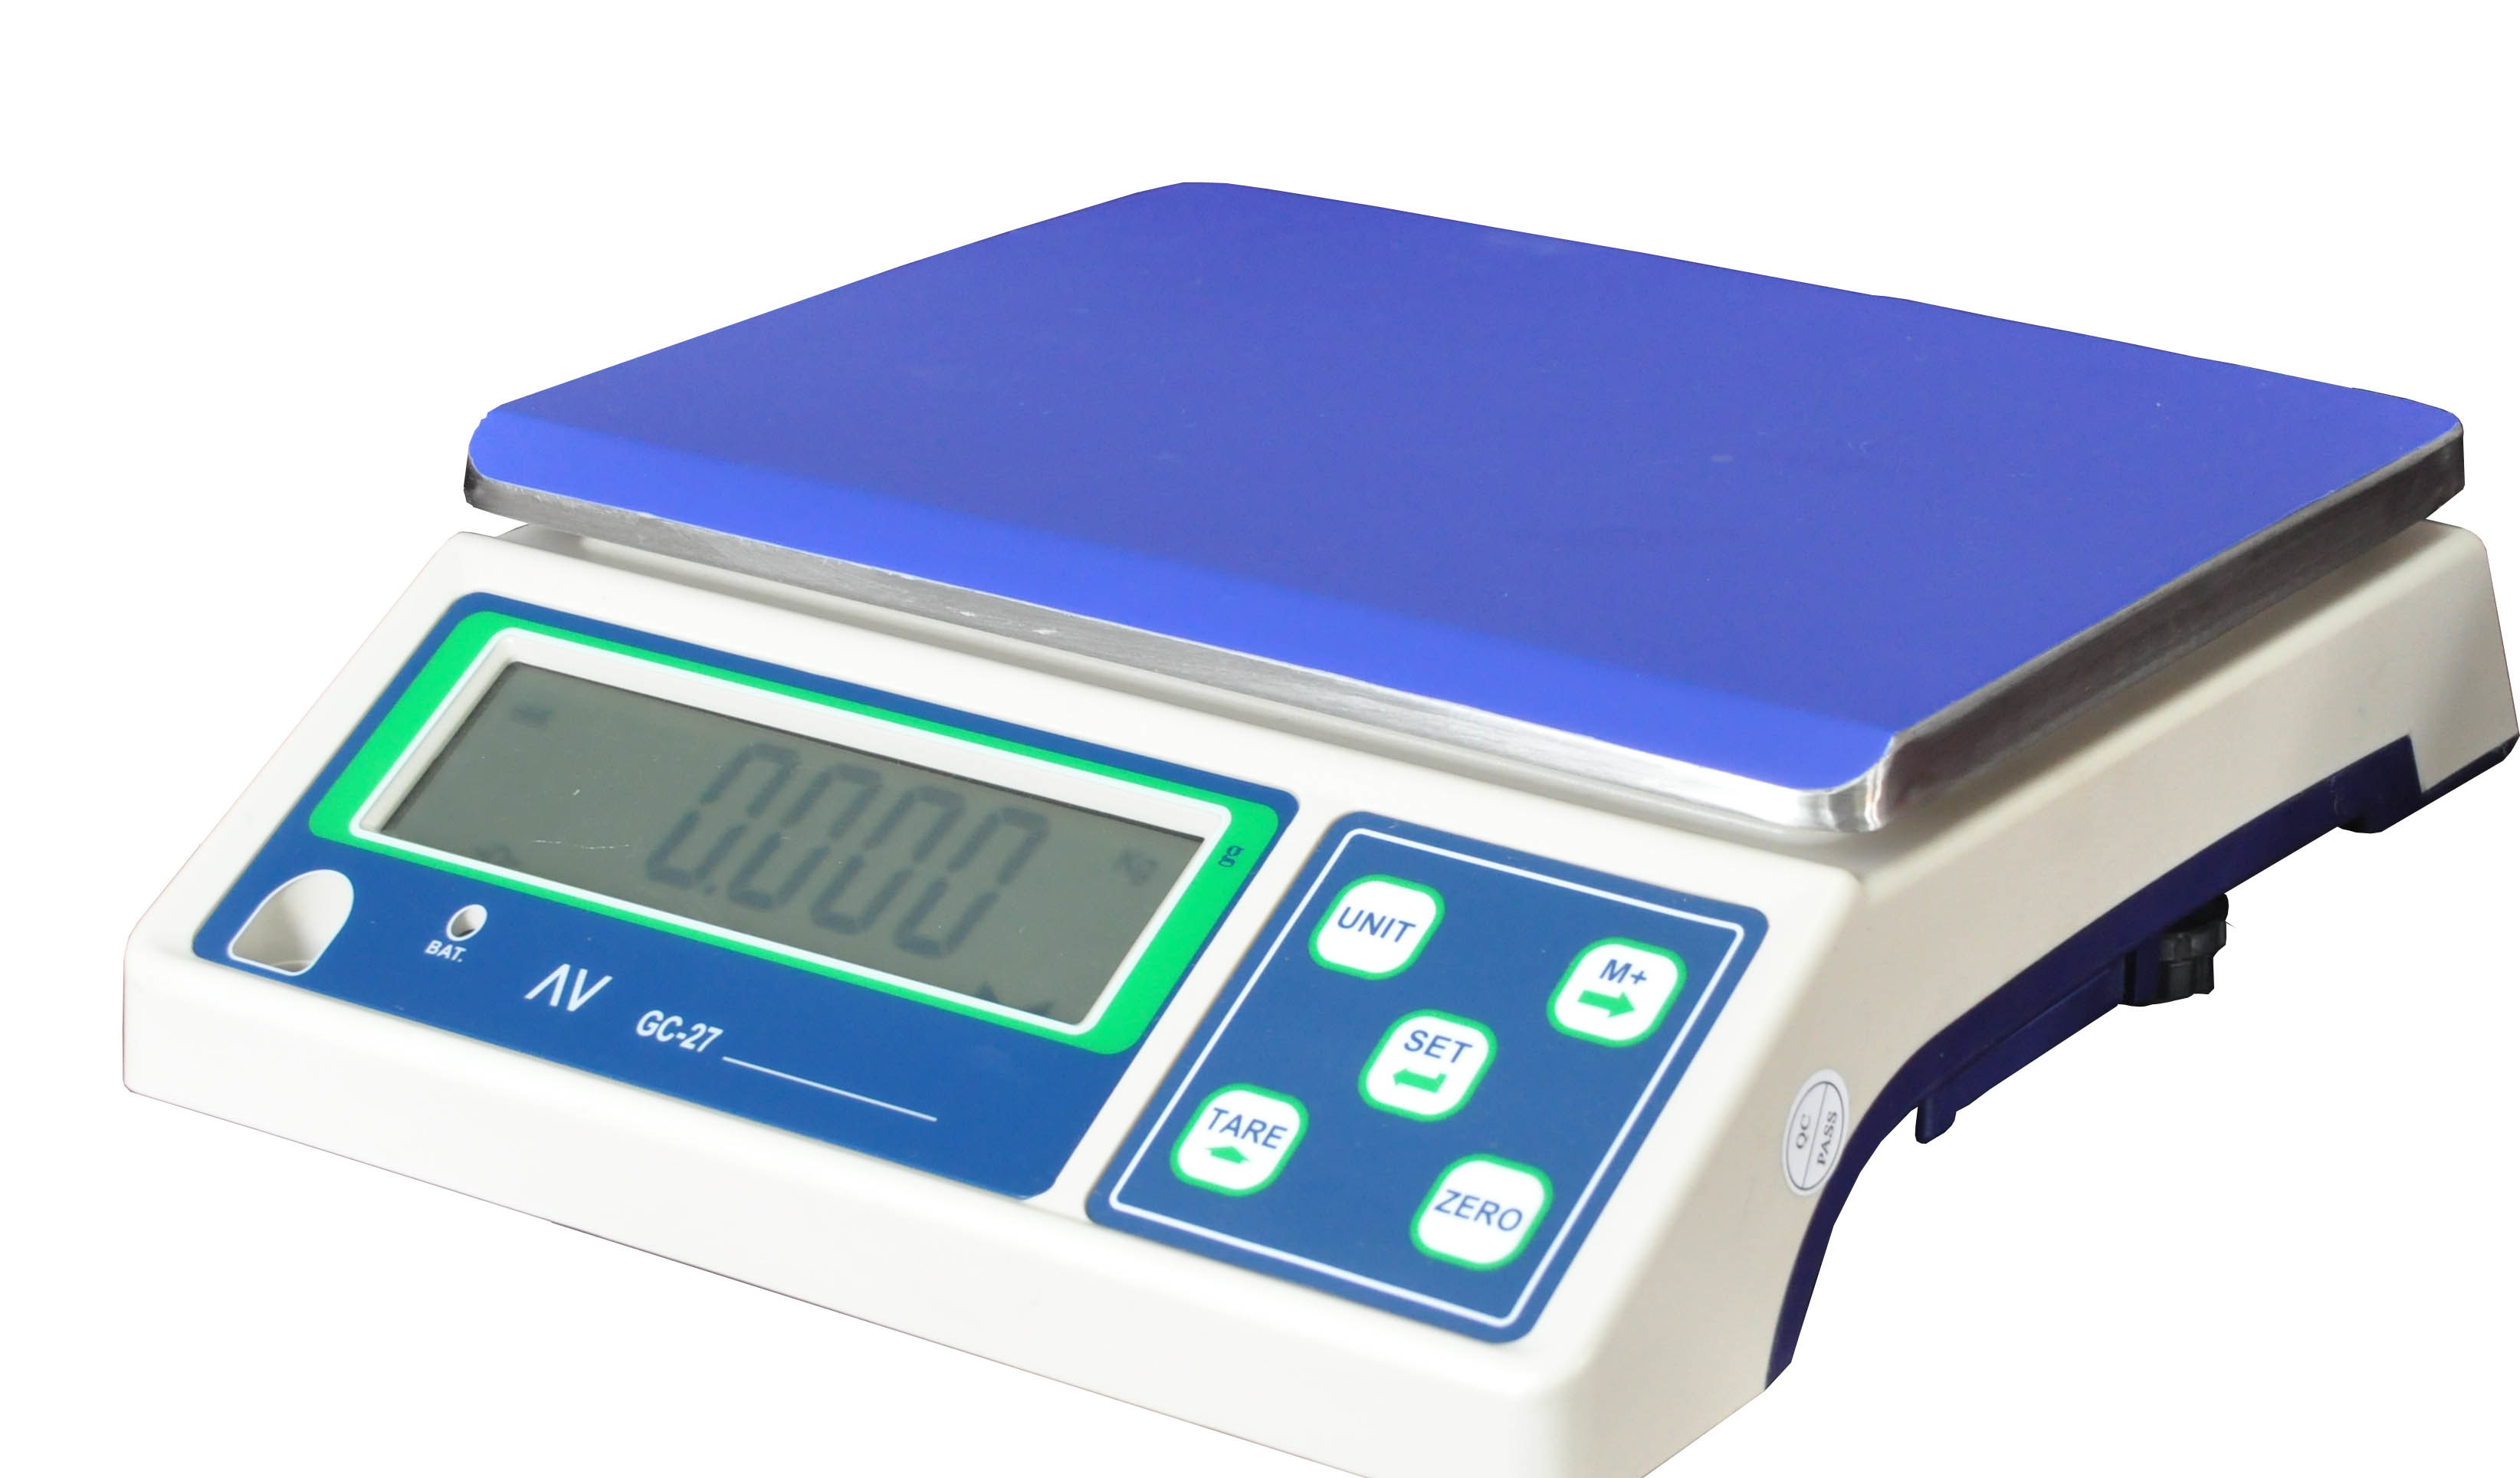 calibrating and operating the manual market weighing scale